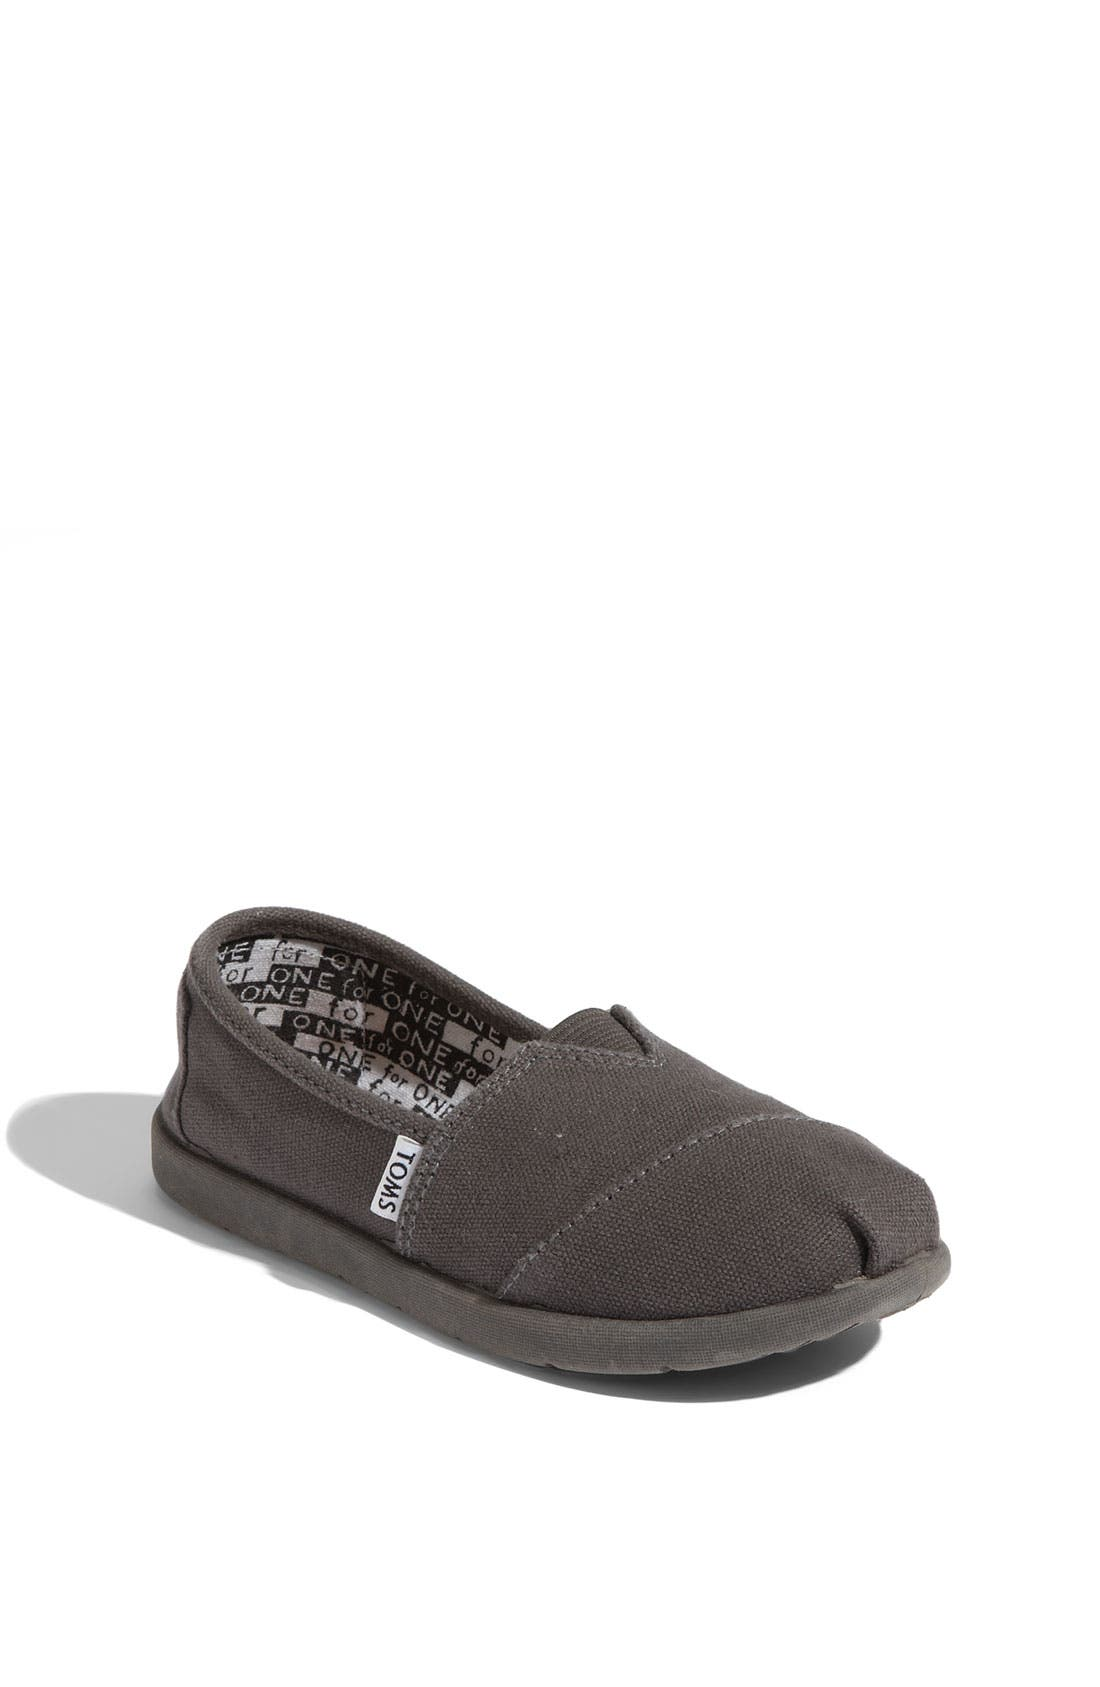 Main Image - TOMS 'Classic - Youth' Slip-On (Toddler, Little Kid & Big Kid)